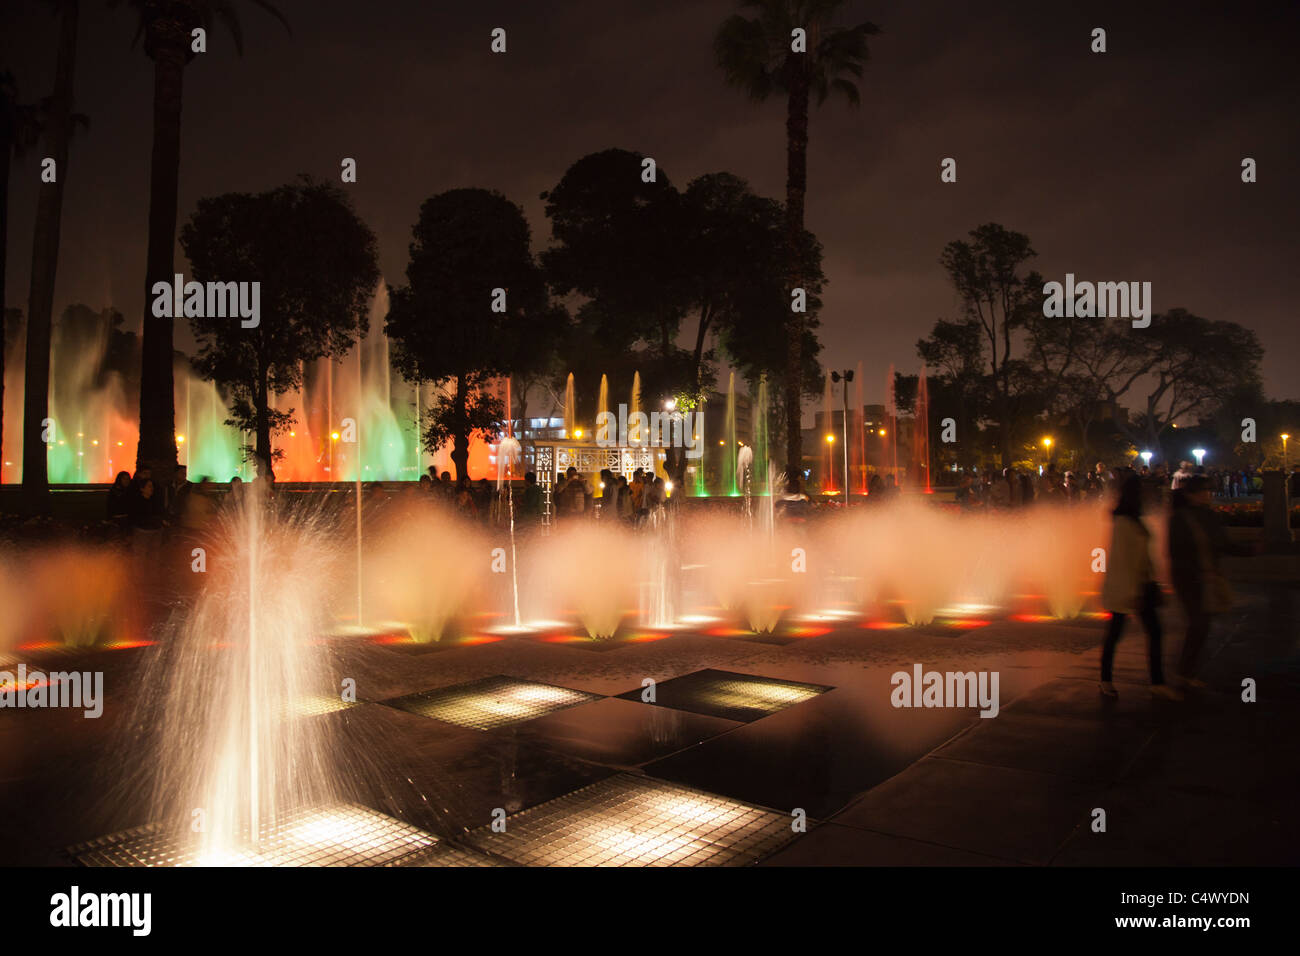 Water fountains lima - Stock Photo The Fountains And Light Show At Parque De La Reserva Lima Peru